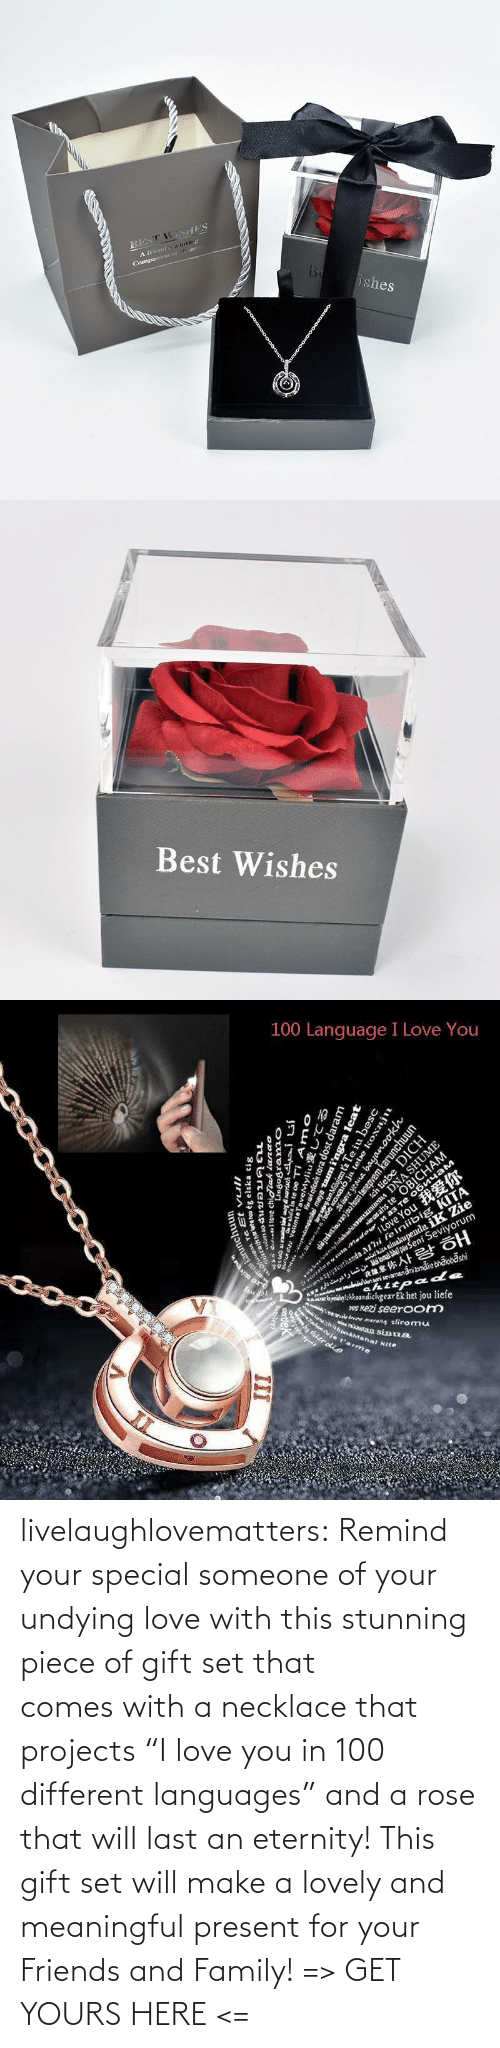 "tumblr: livelaughlovematters:  Remind your special someone of your undying love with this stunning piece of gift set that comes with a necklace that projects ""I love you in 100 different languages"" and a rose that will last an eternity! This gift set will make a lovely and meaningful present for your Friends and Family! => GET YOURS HERE <="